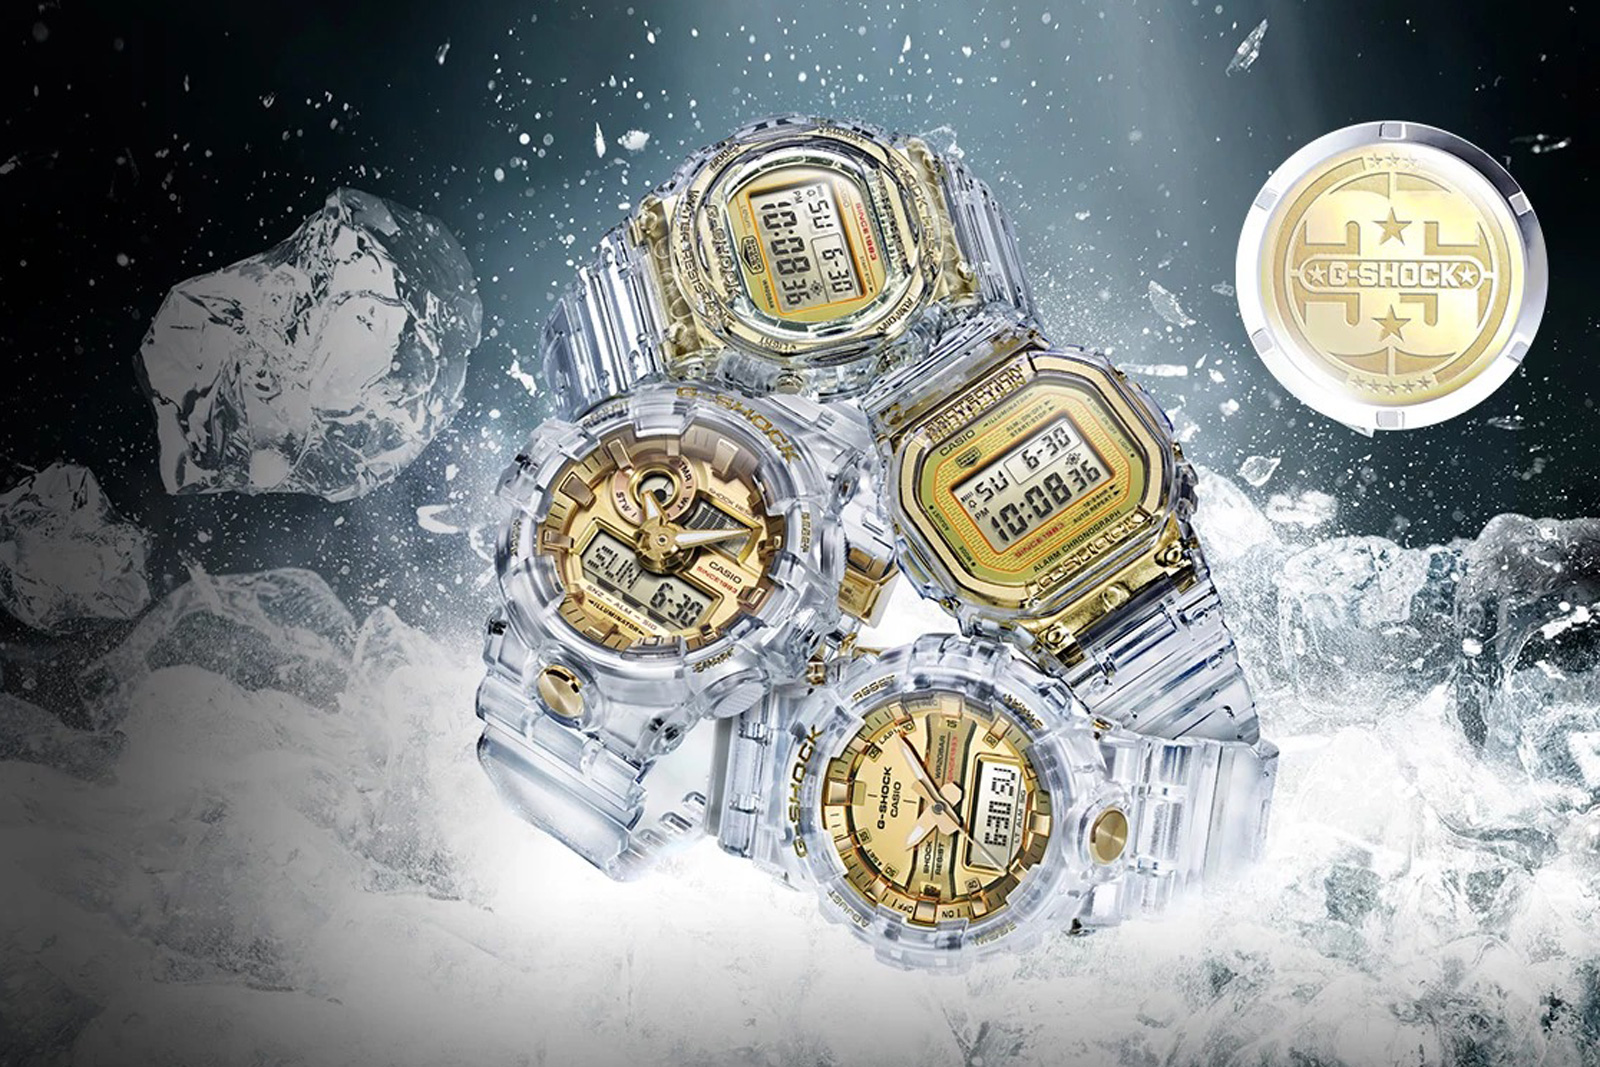 Casio's see-through G-Shock watches are an icy blast of nostalgia